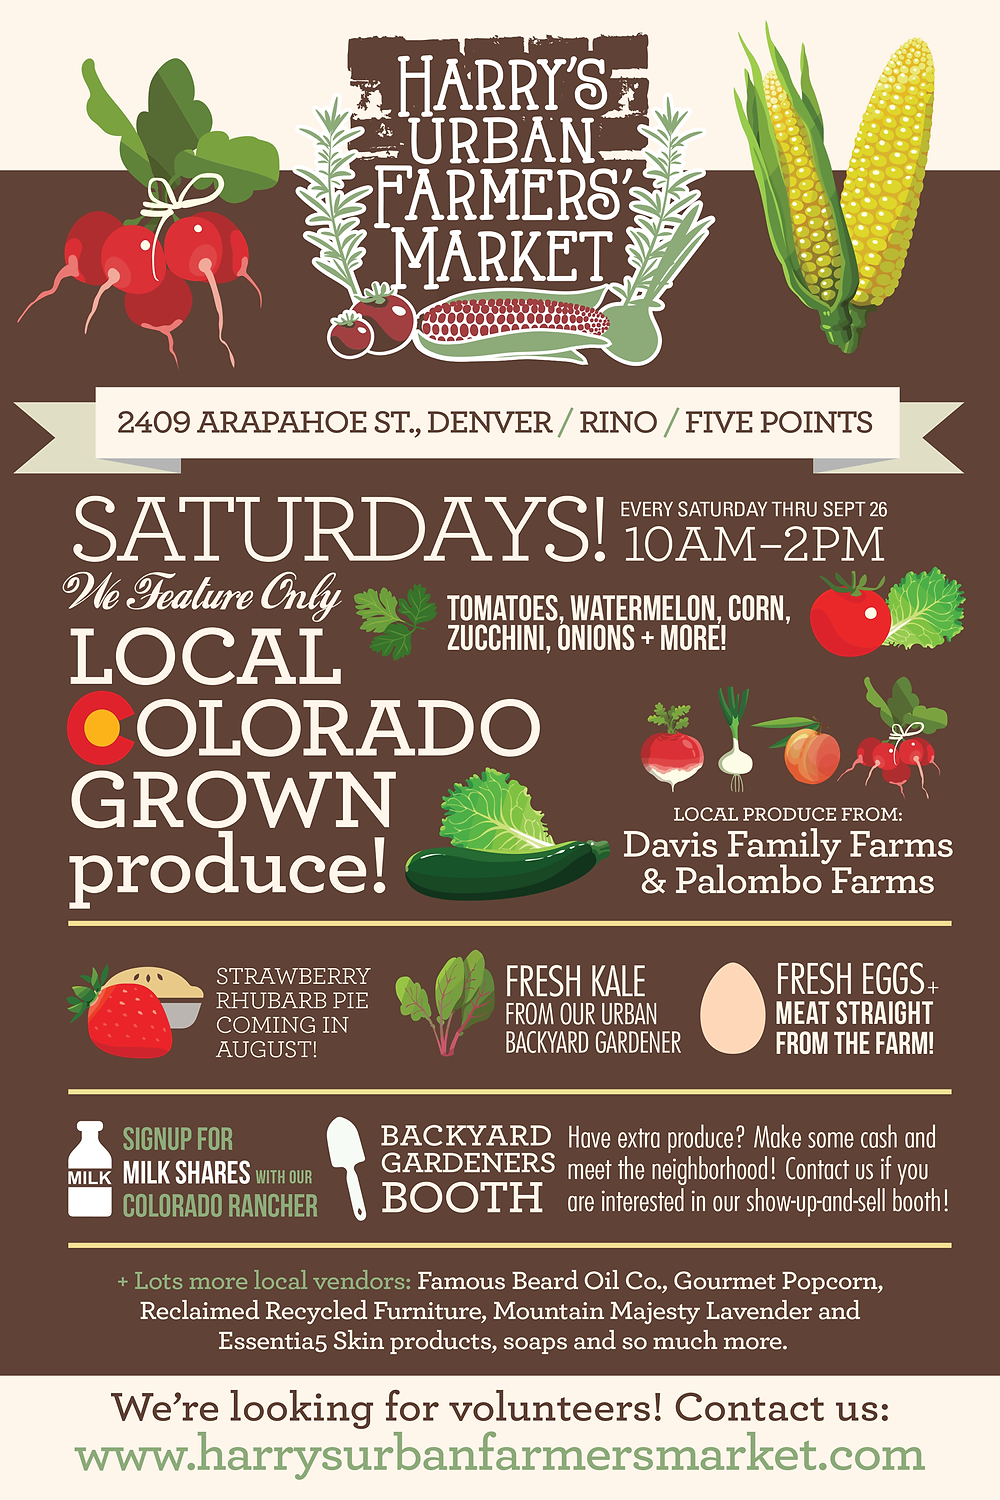 Infographic Design Agency - Farmers Market Infographic